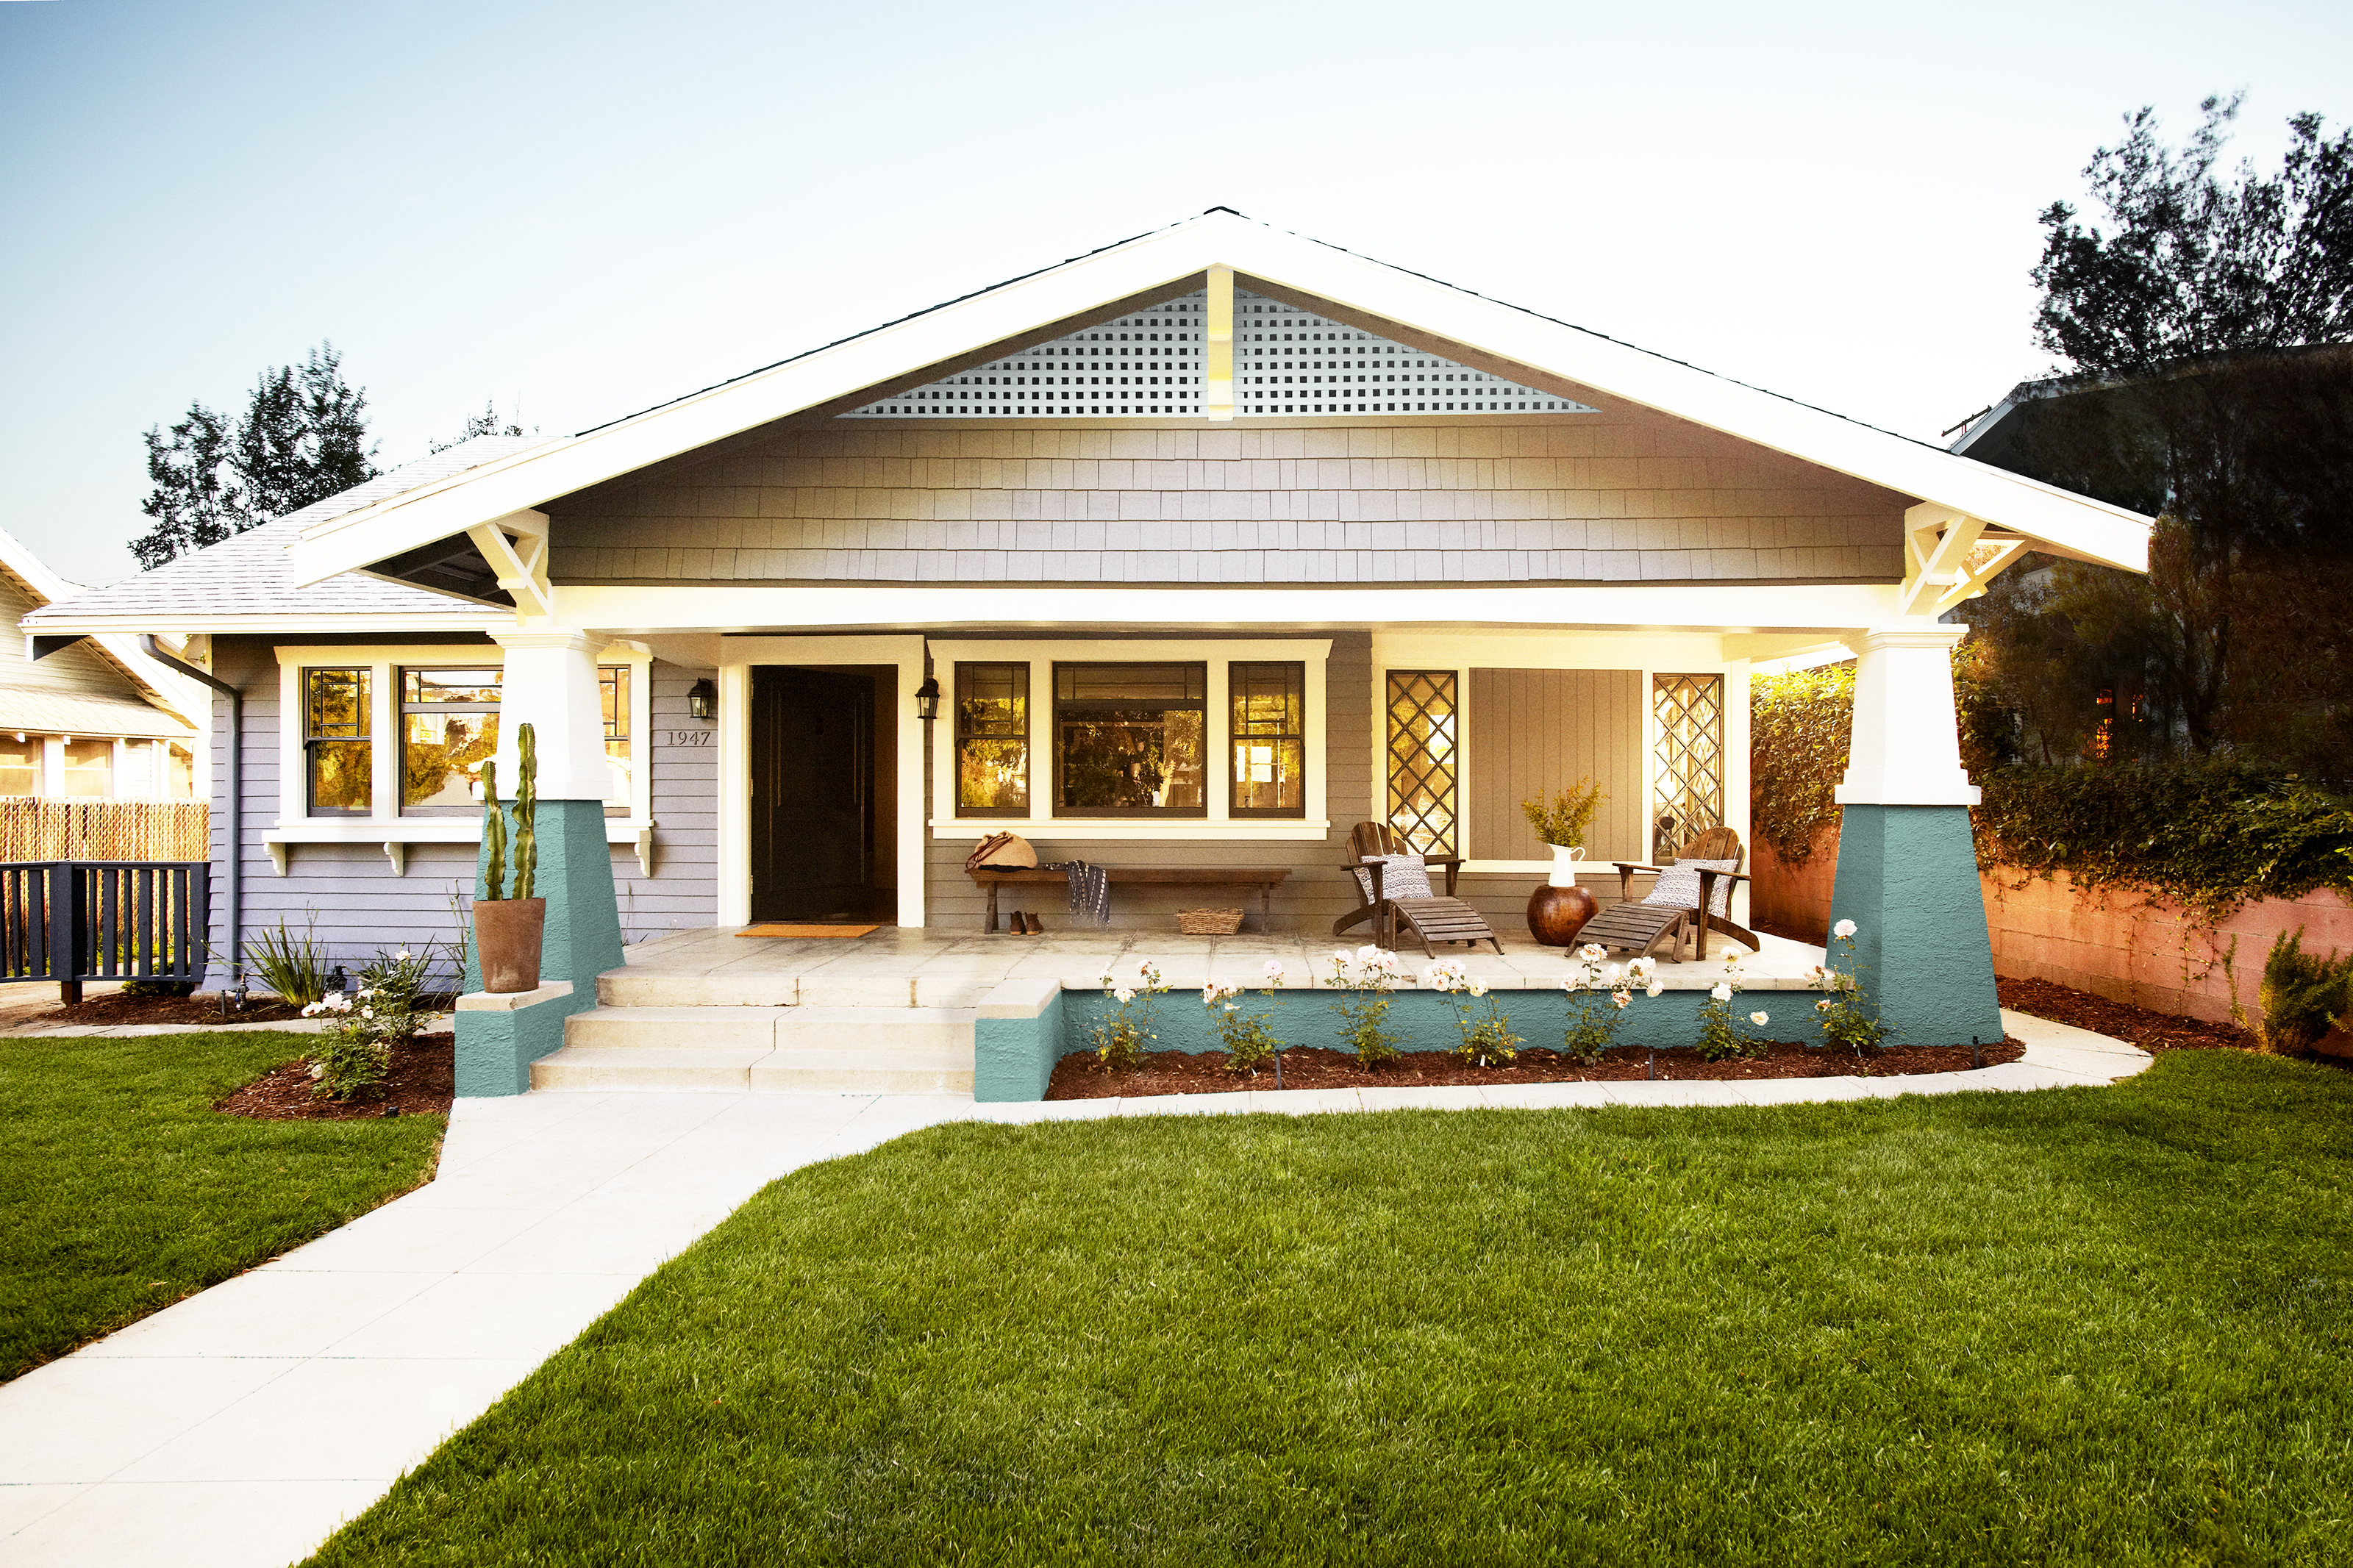 Bungalow with teal porch and stucco columns|Exterior Staging